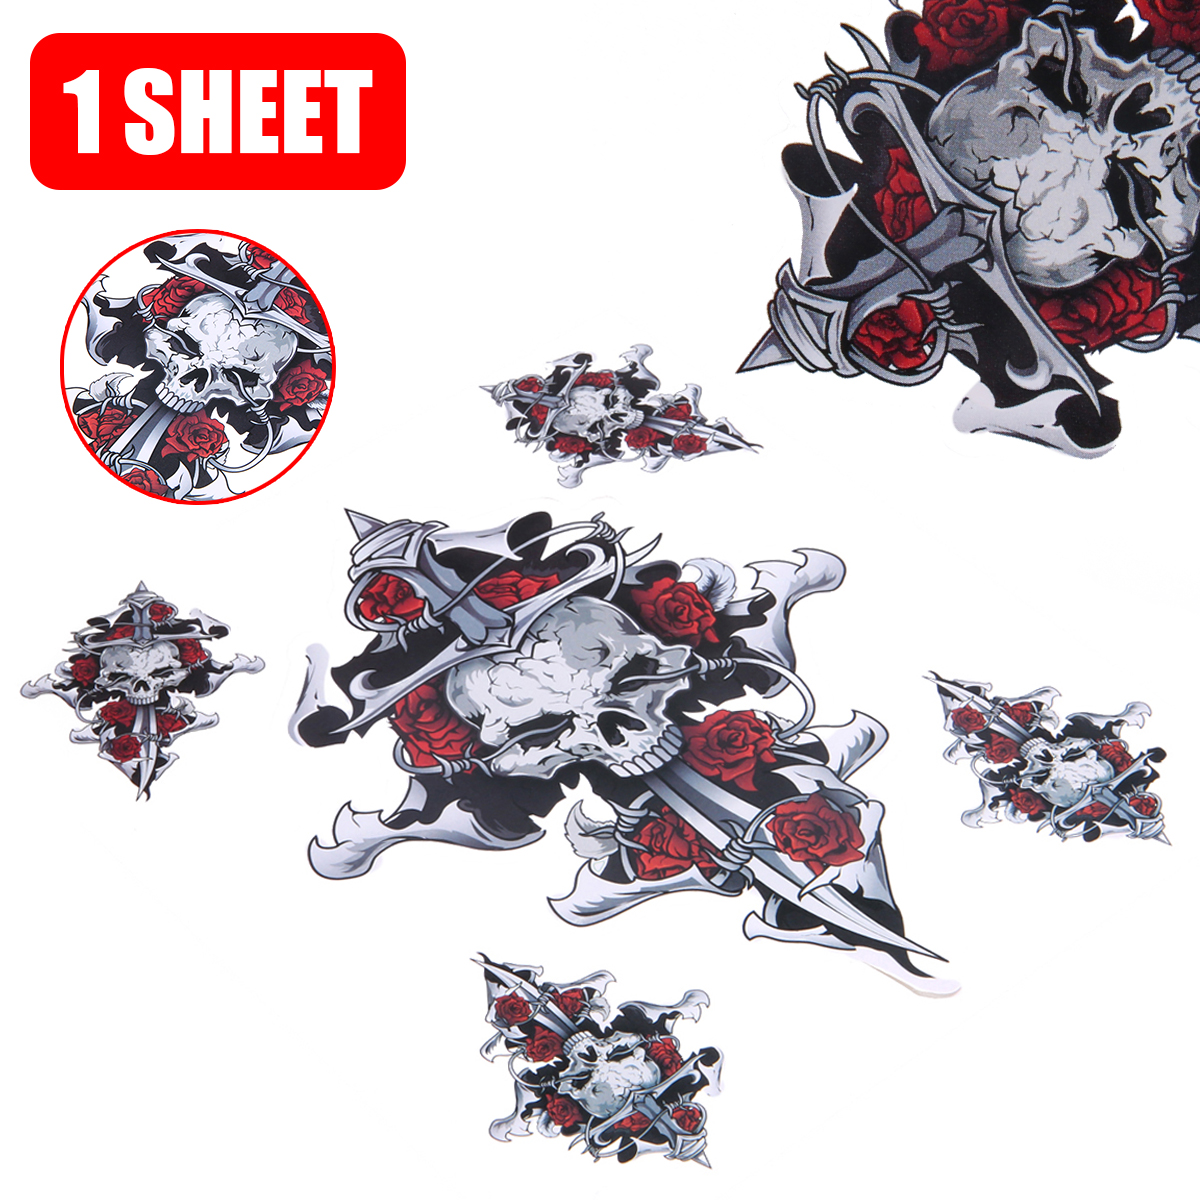 Motorbike Cool Helmet Stickers Decoration 1 Sheet Red Rose Skull Self-adhesive Sticker Decal For Motorcycle Motorbike